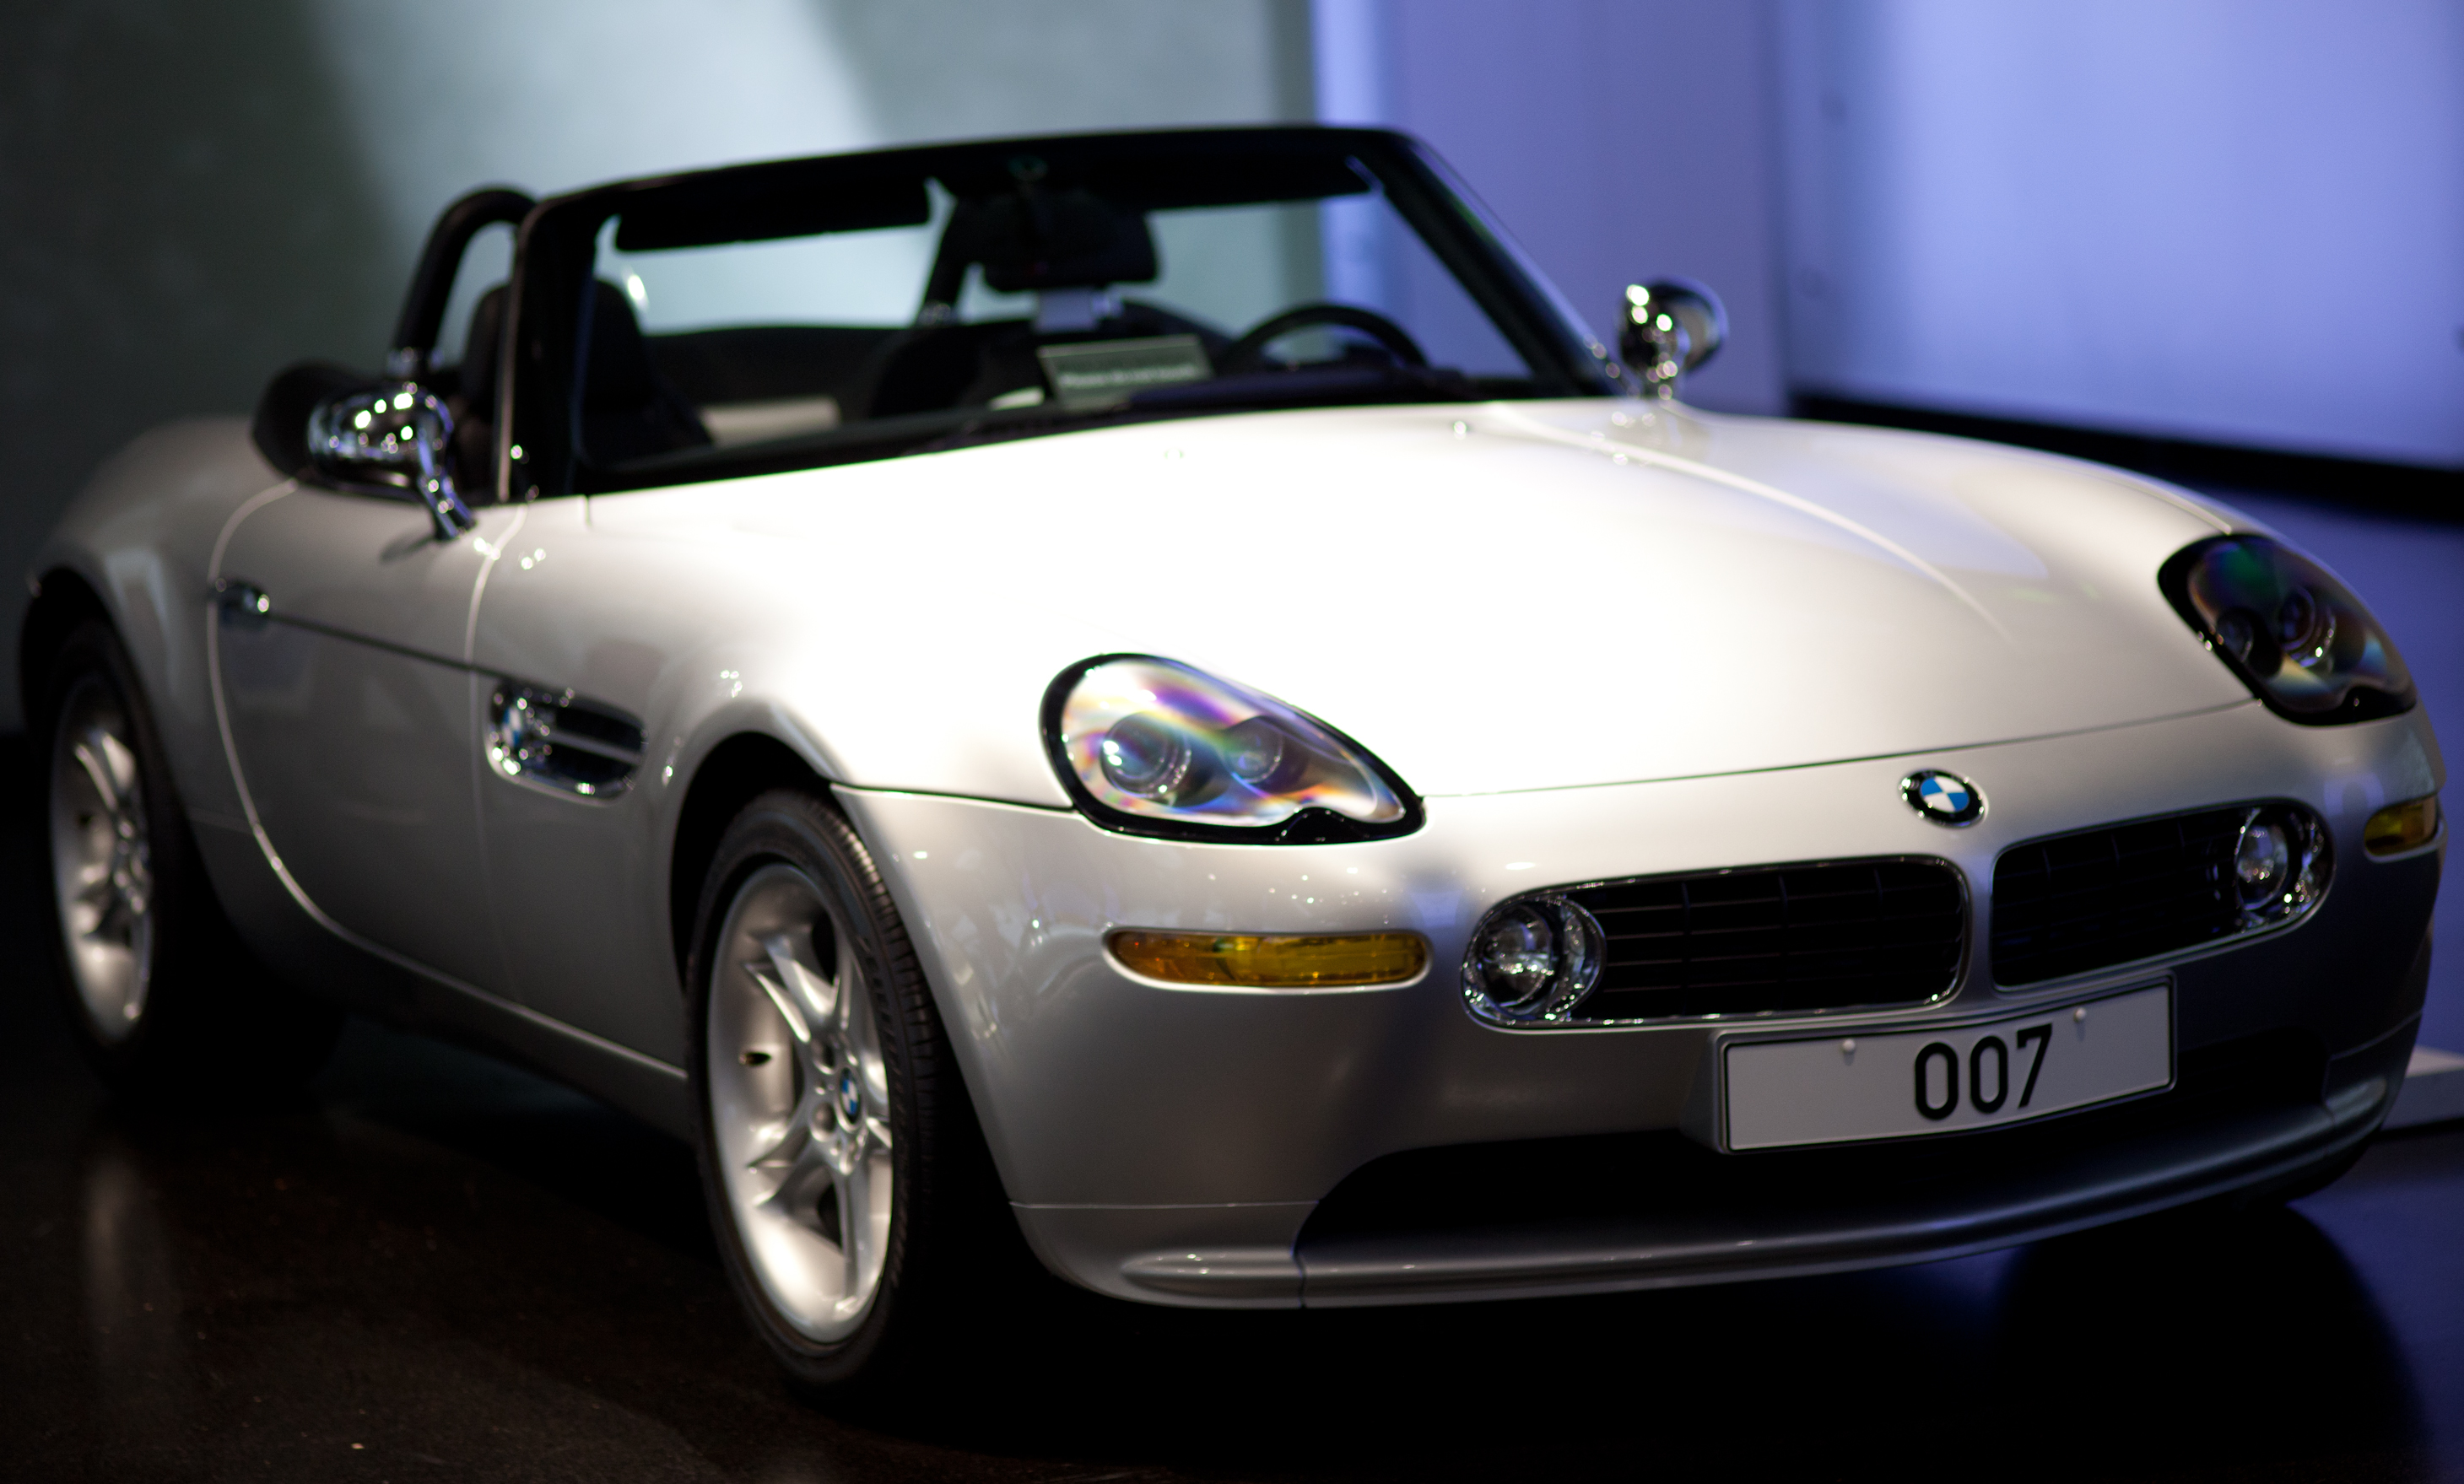 James Bond 007 Bmw Z8 Was A Roadster Car Produced By Germa